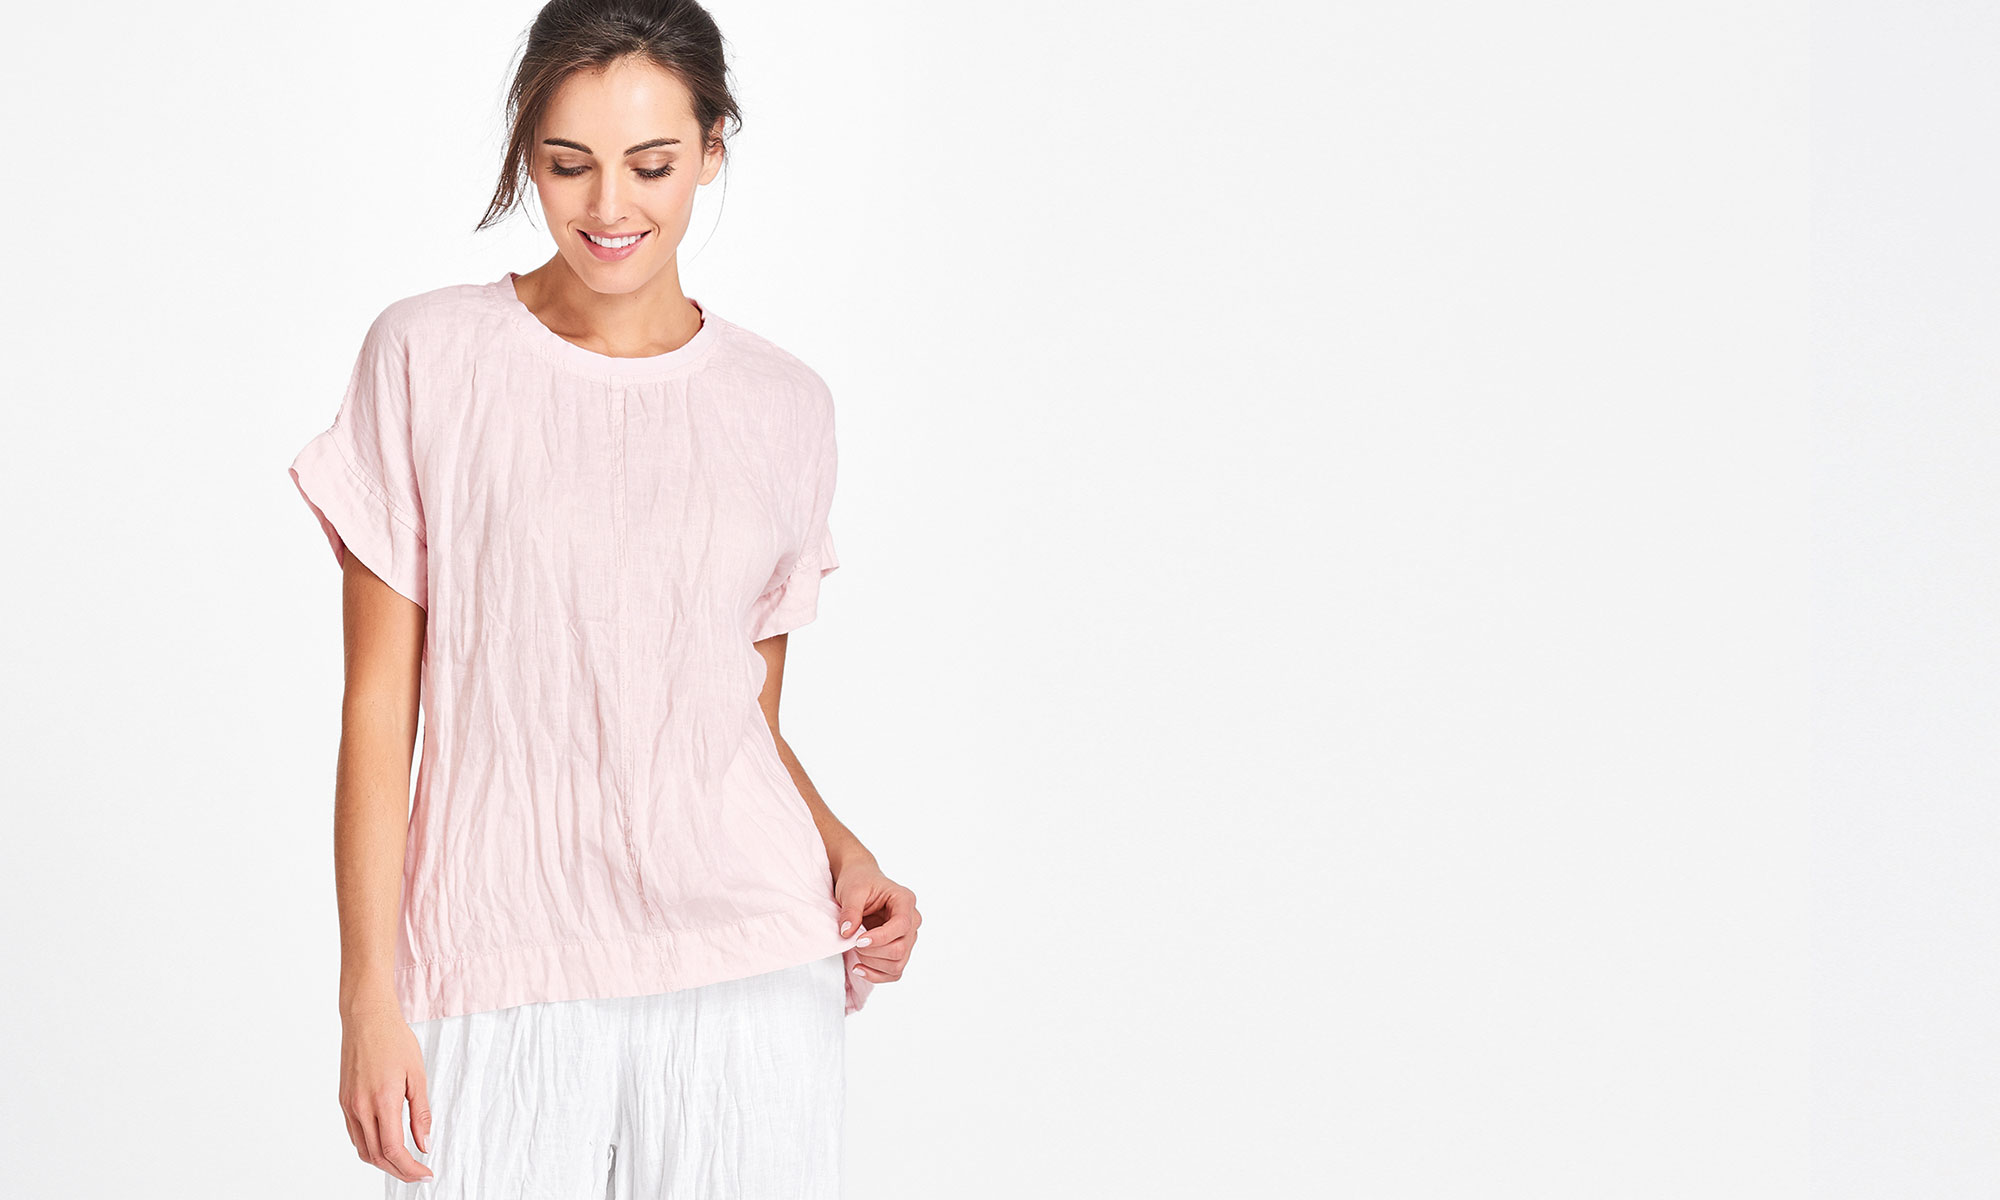 urban flax linen short sleeve top in pink